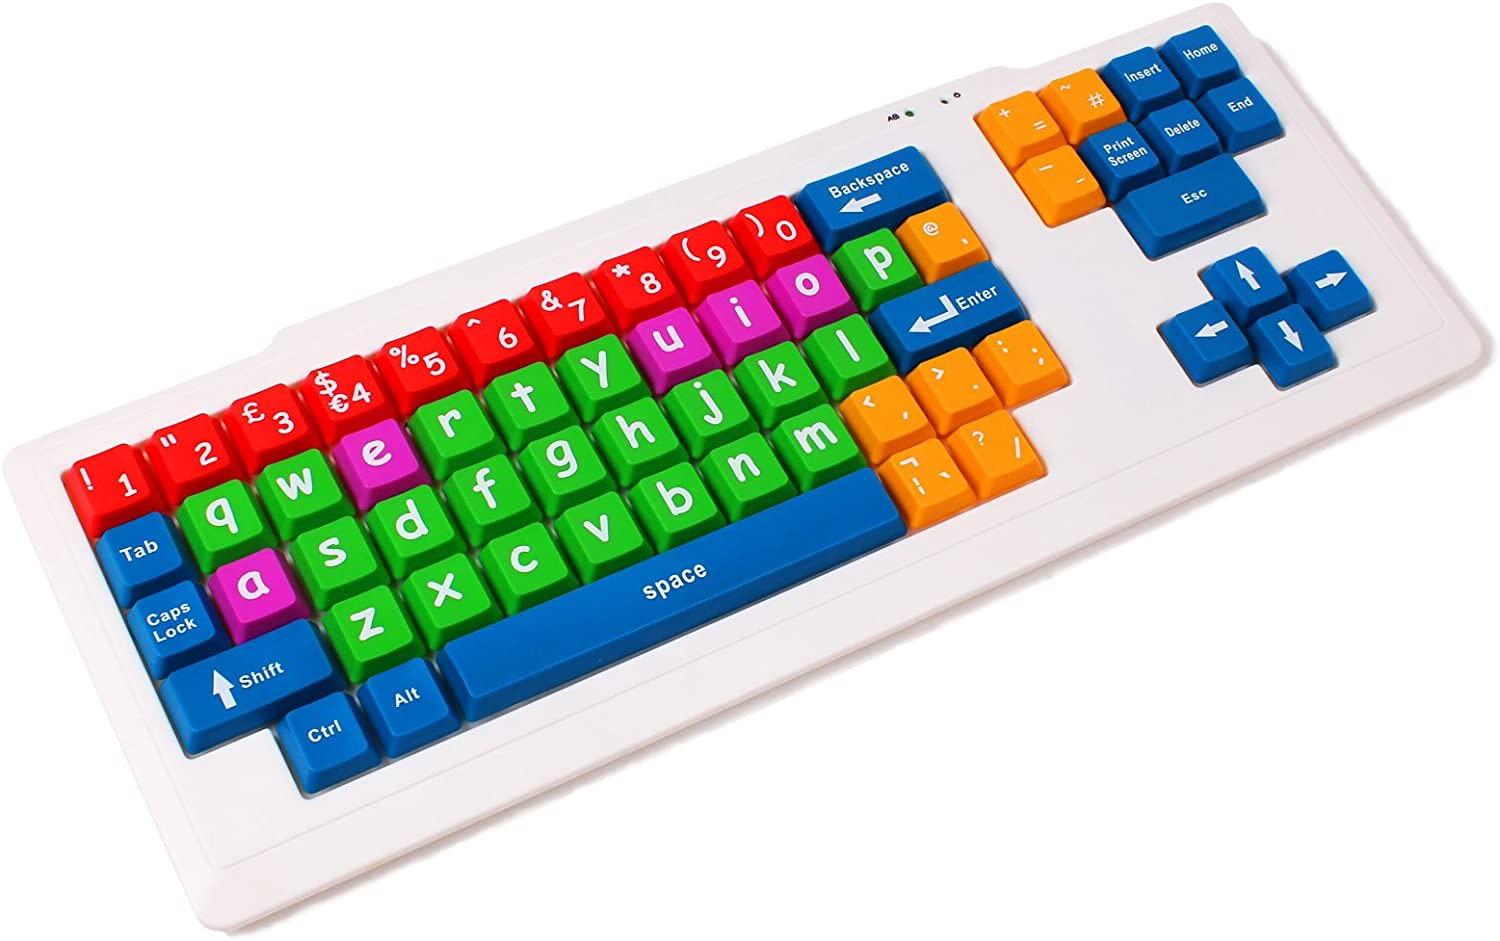 DURAGADGET Large Colourful Childrens/Special Needs/Sight impaired PC Keyboard PS2/USB - Great for Teaching/Learning at Home (Dimensions: 470 x 180 x 15mm)